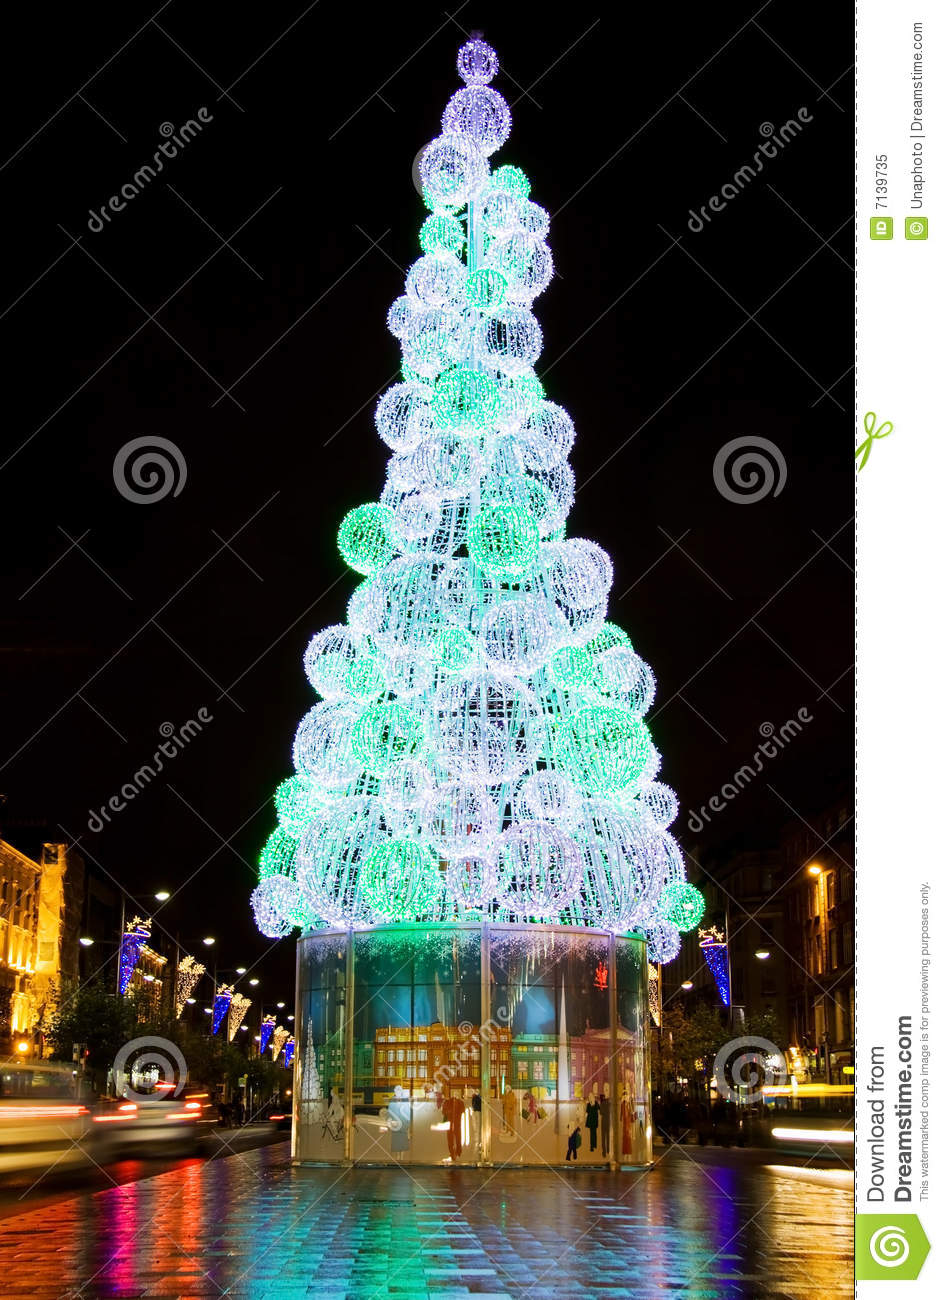 The Beautiful Christmas Tree